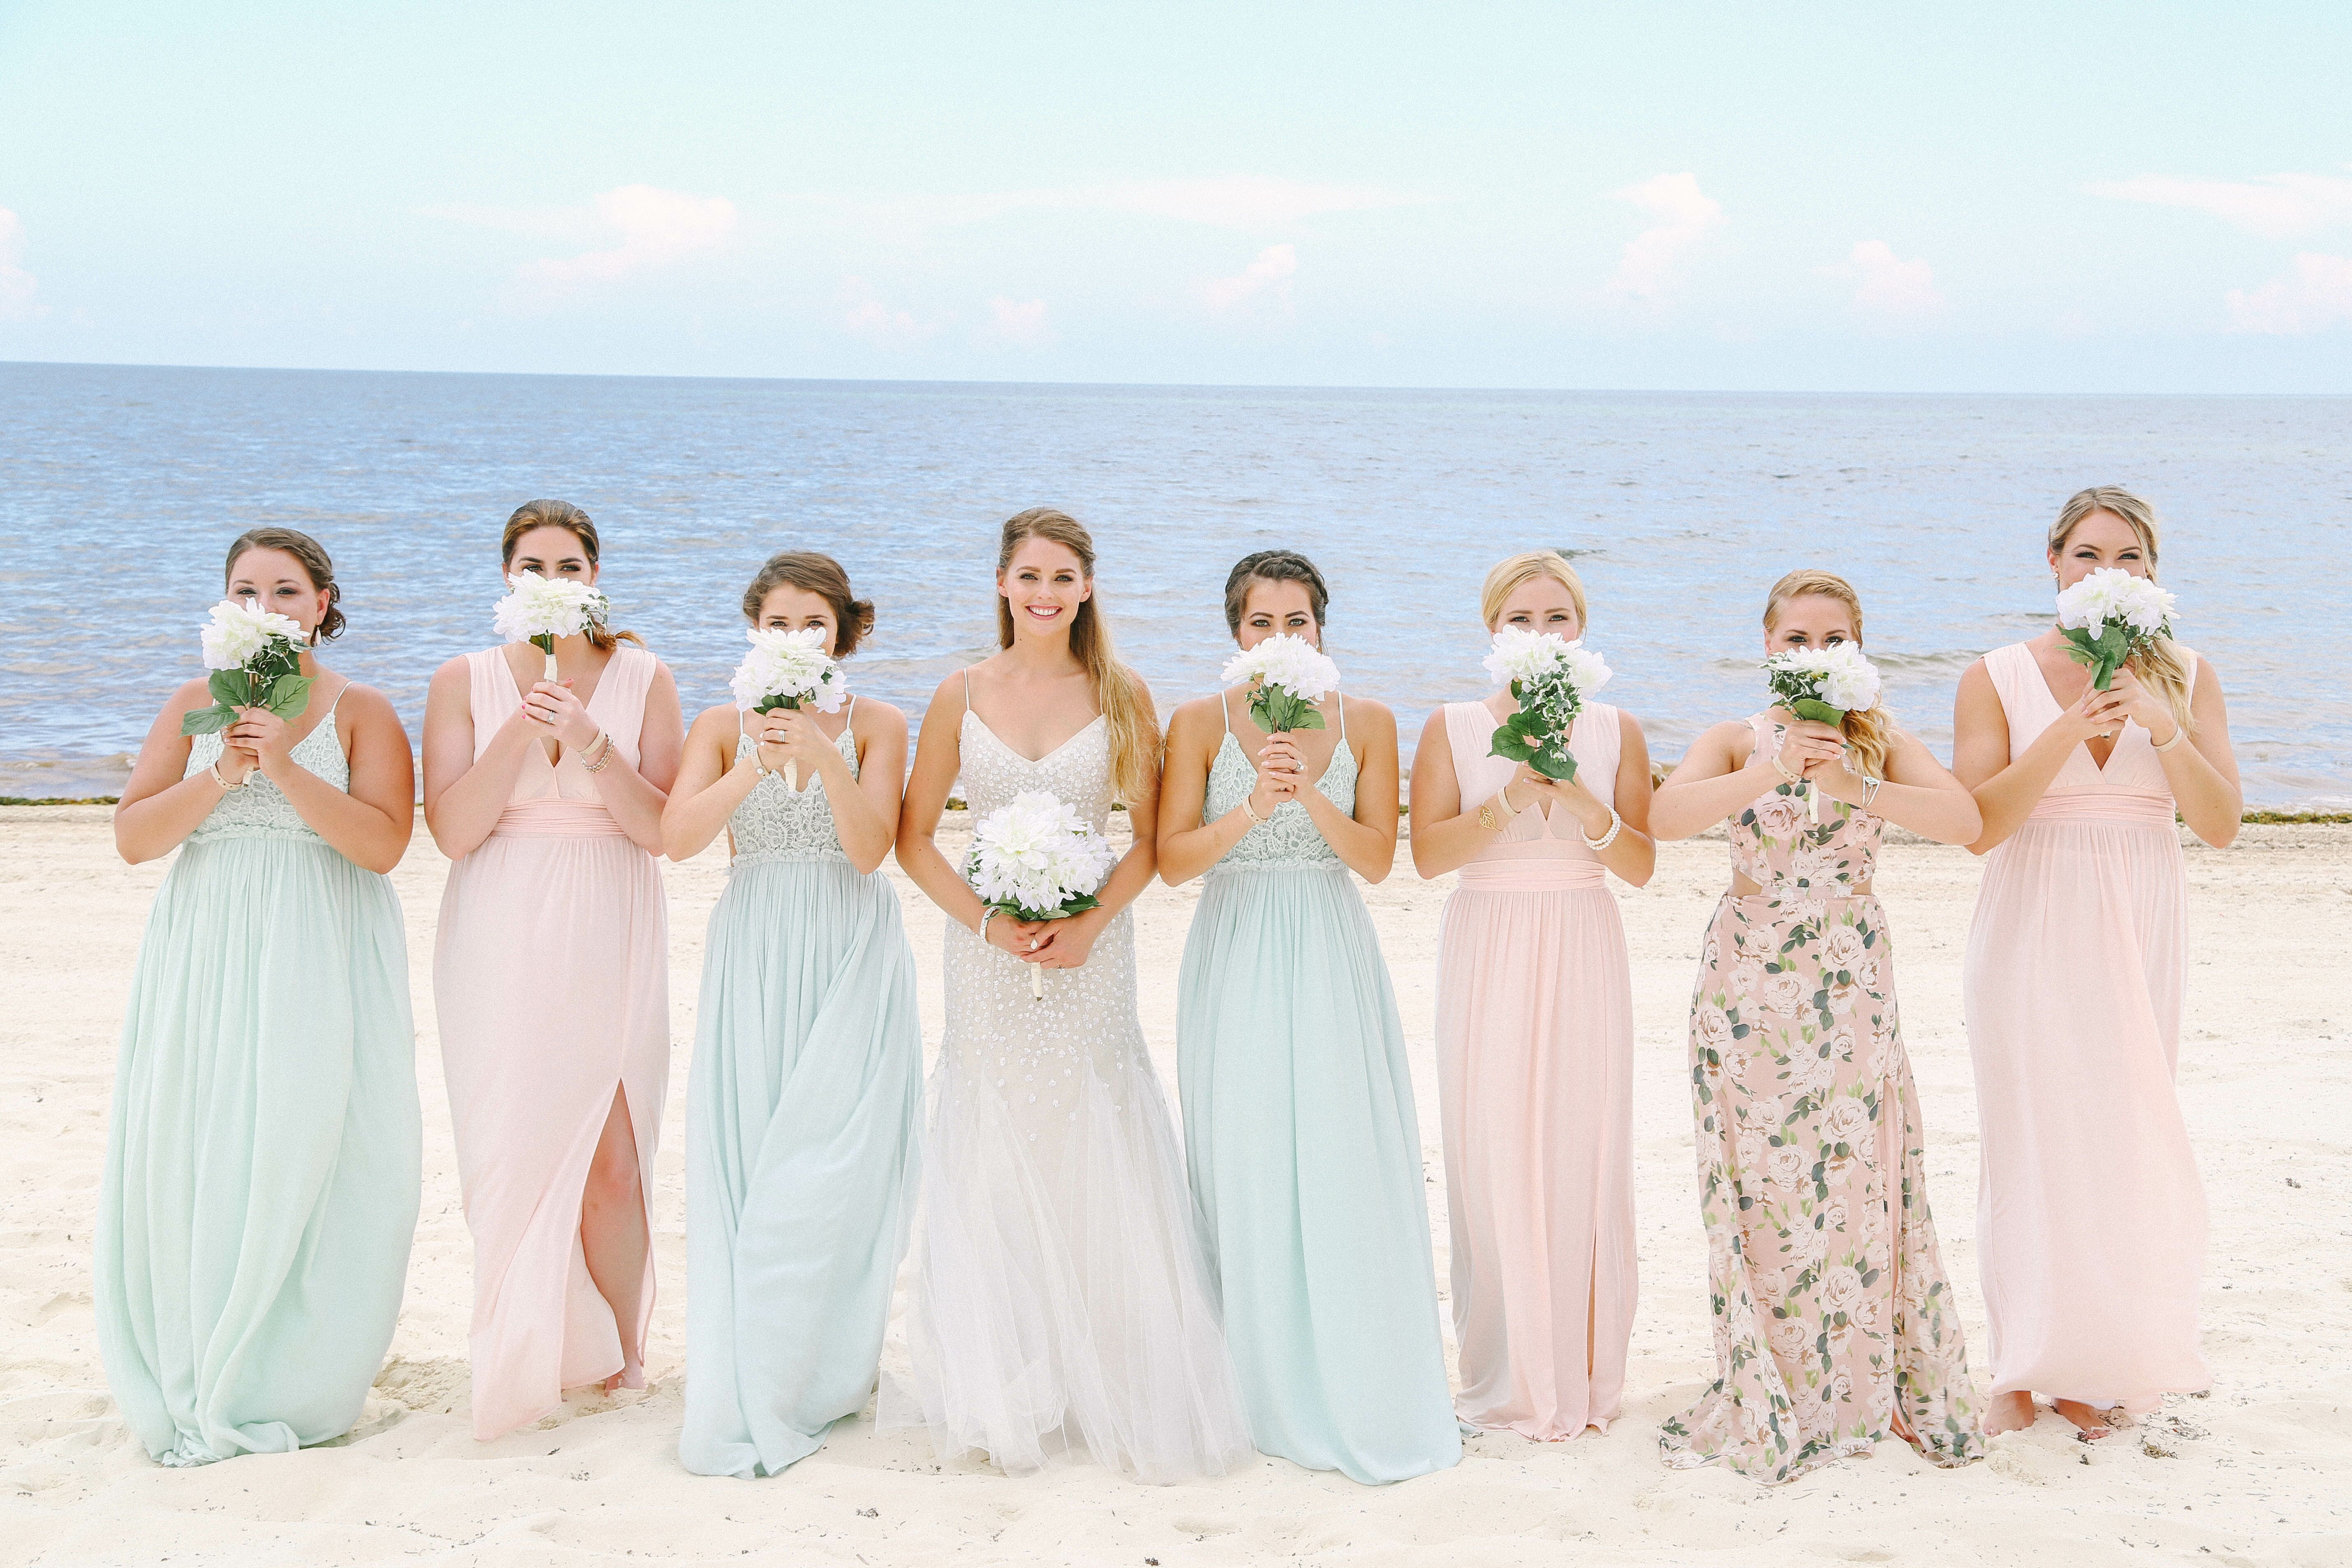 Blush and mint bridesmaid dresses for beach wedding for Bridesmaid dresses for beach wedding theme